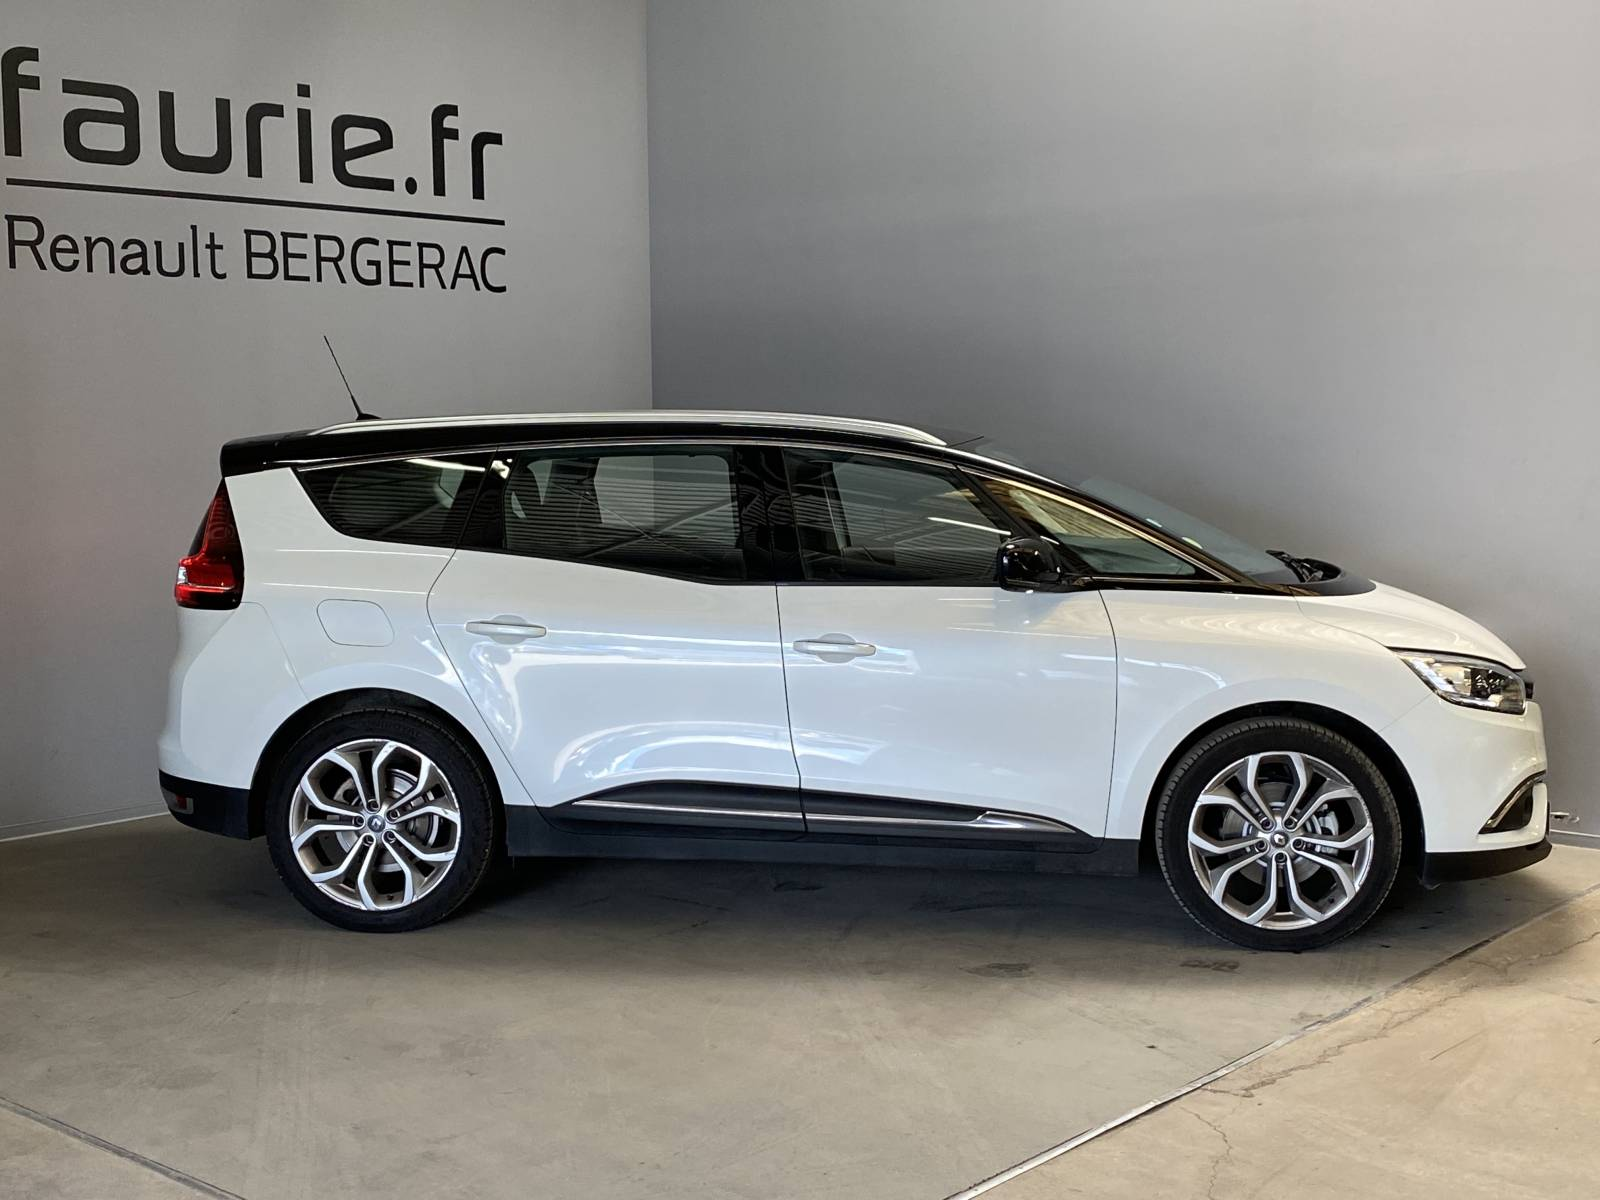 RENAULT Grand Scénic dCi 110 Energy EDC - véhicule d'occasion - Site Internet Faurie - Renault - Faurie Auto Bergerac - 24100 - Bergerac - 14